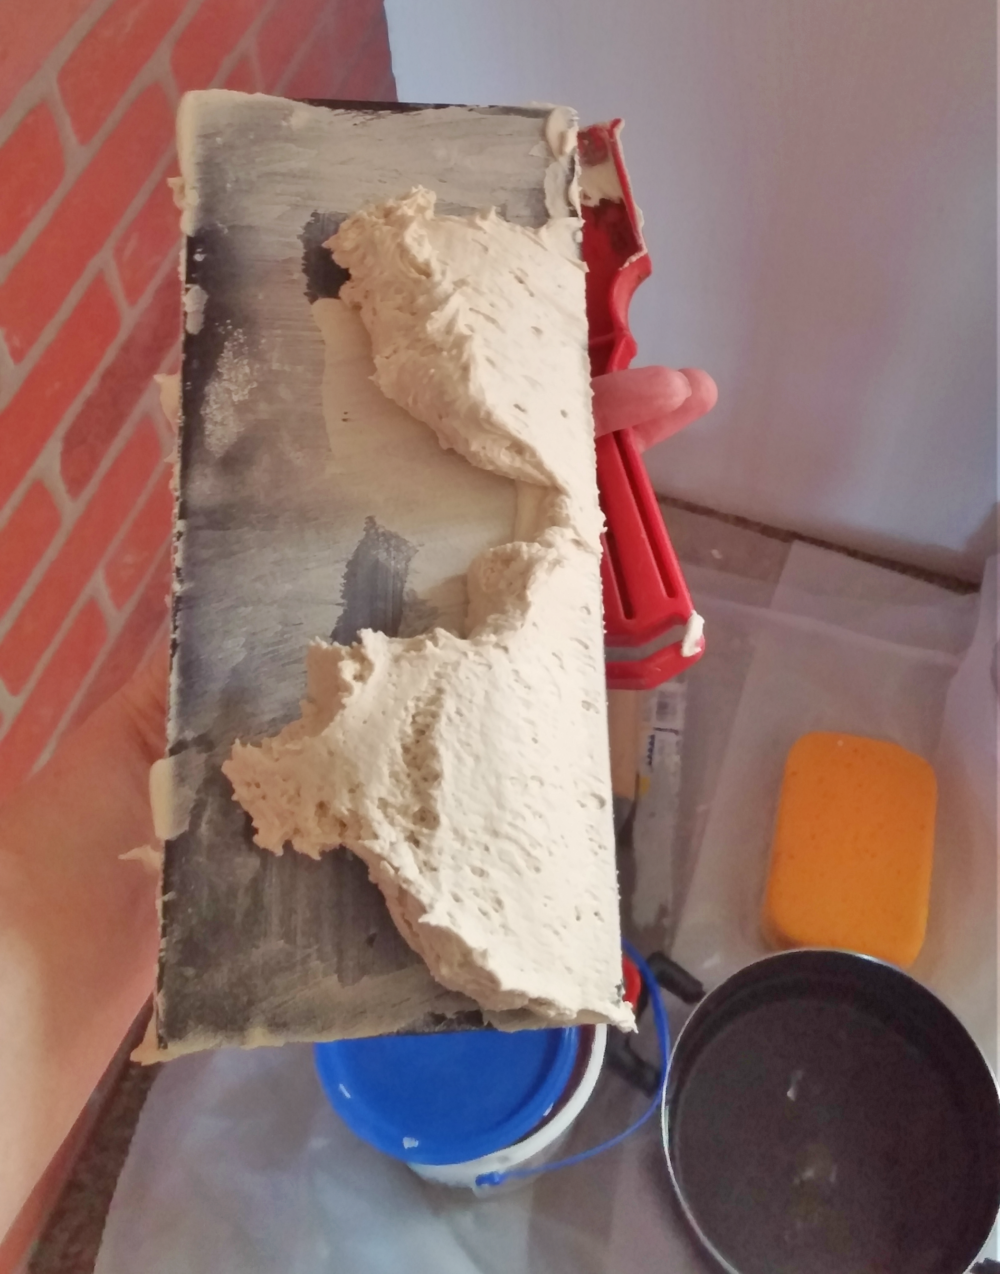 drywall joint compound for German schmear technique